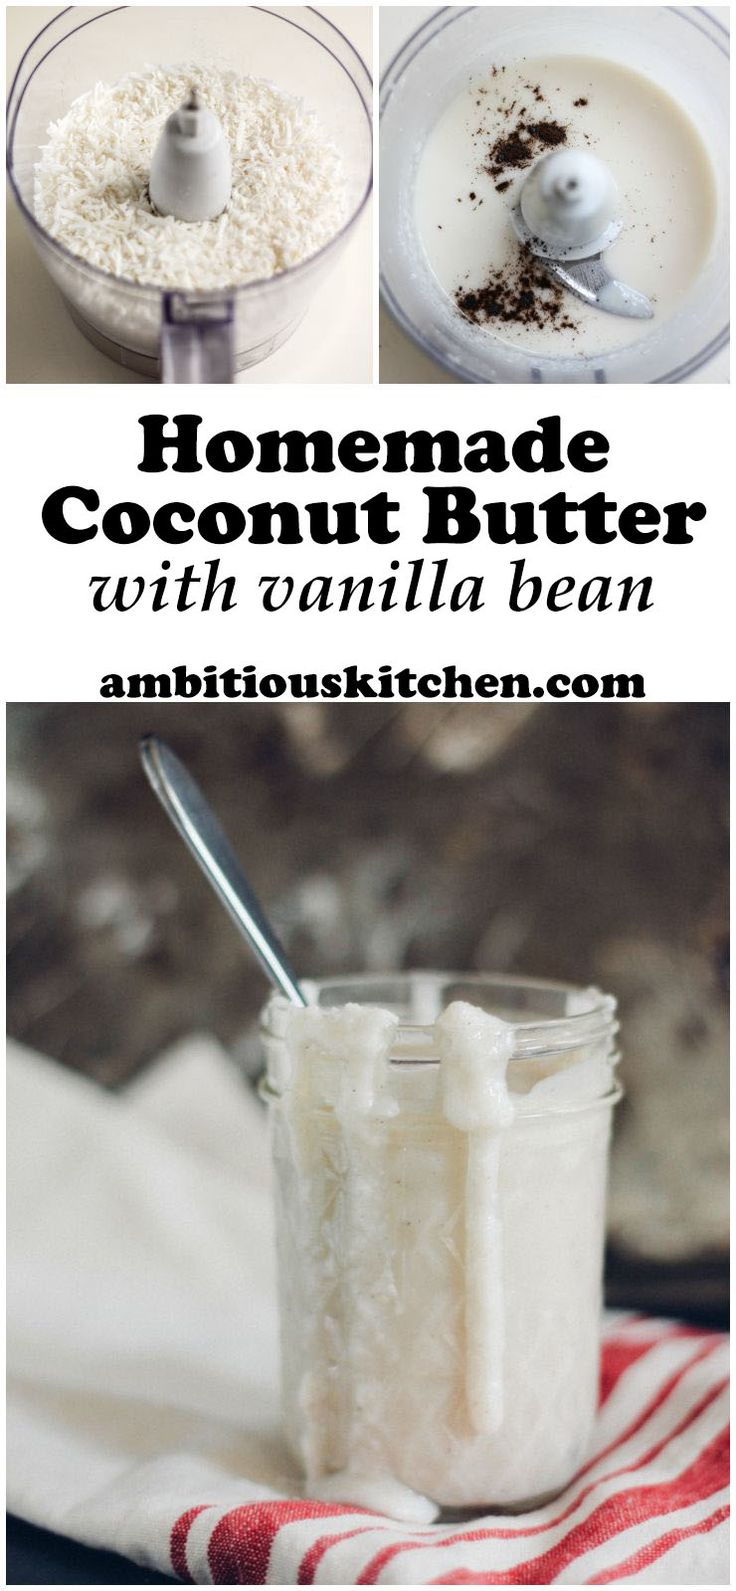 Learn how to make homemade coconut butter! A creamy, velvety spread that's delicious on toast, sweet potatoes, etc.